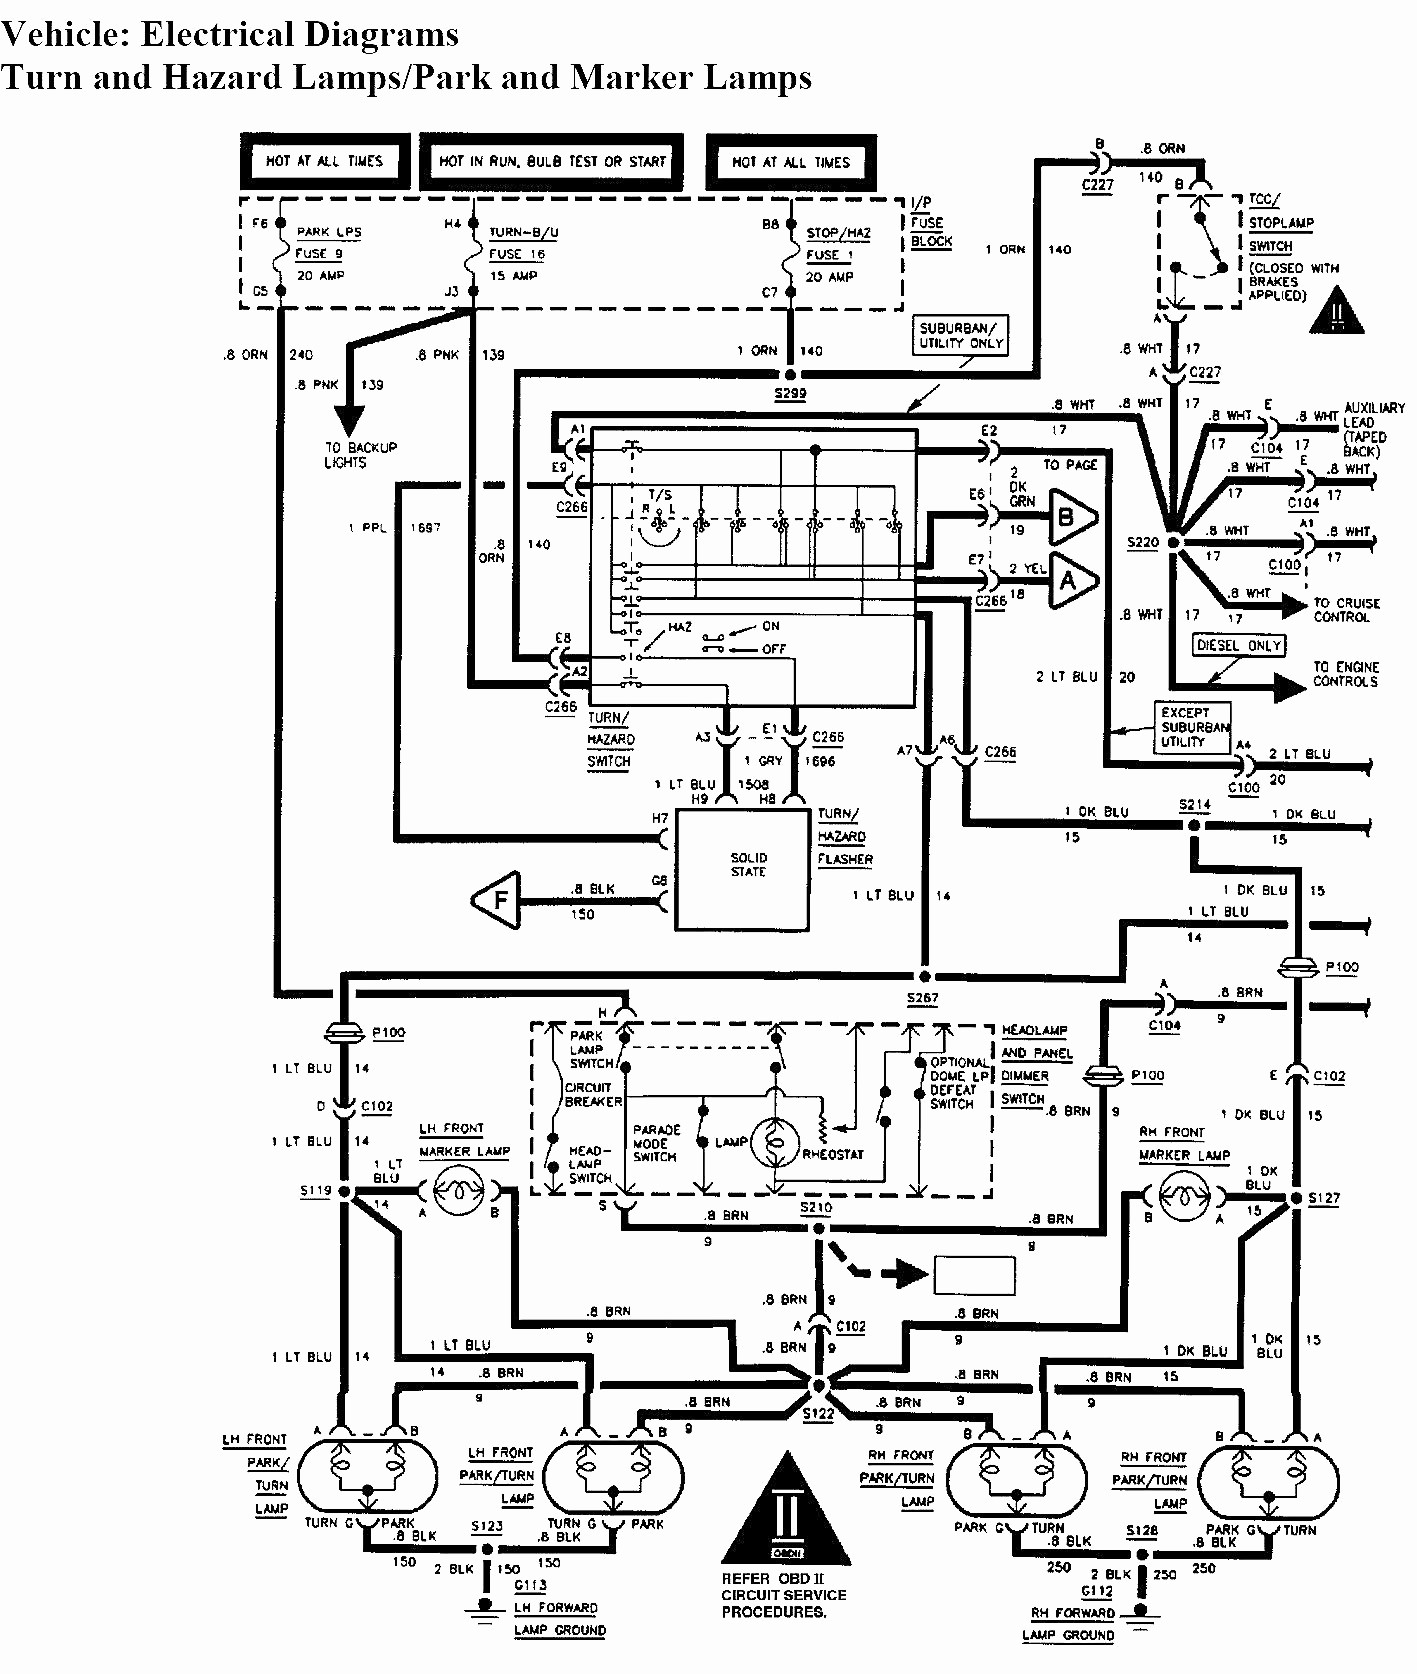 2005 colorado tail light wiring diagram